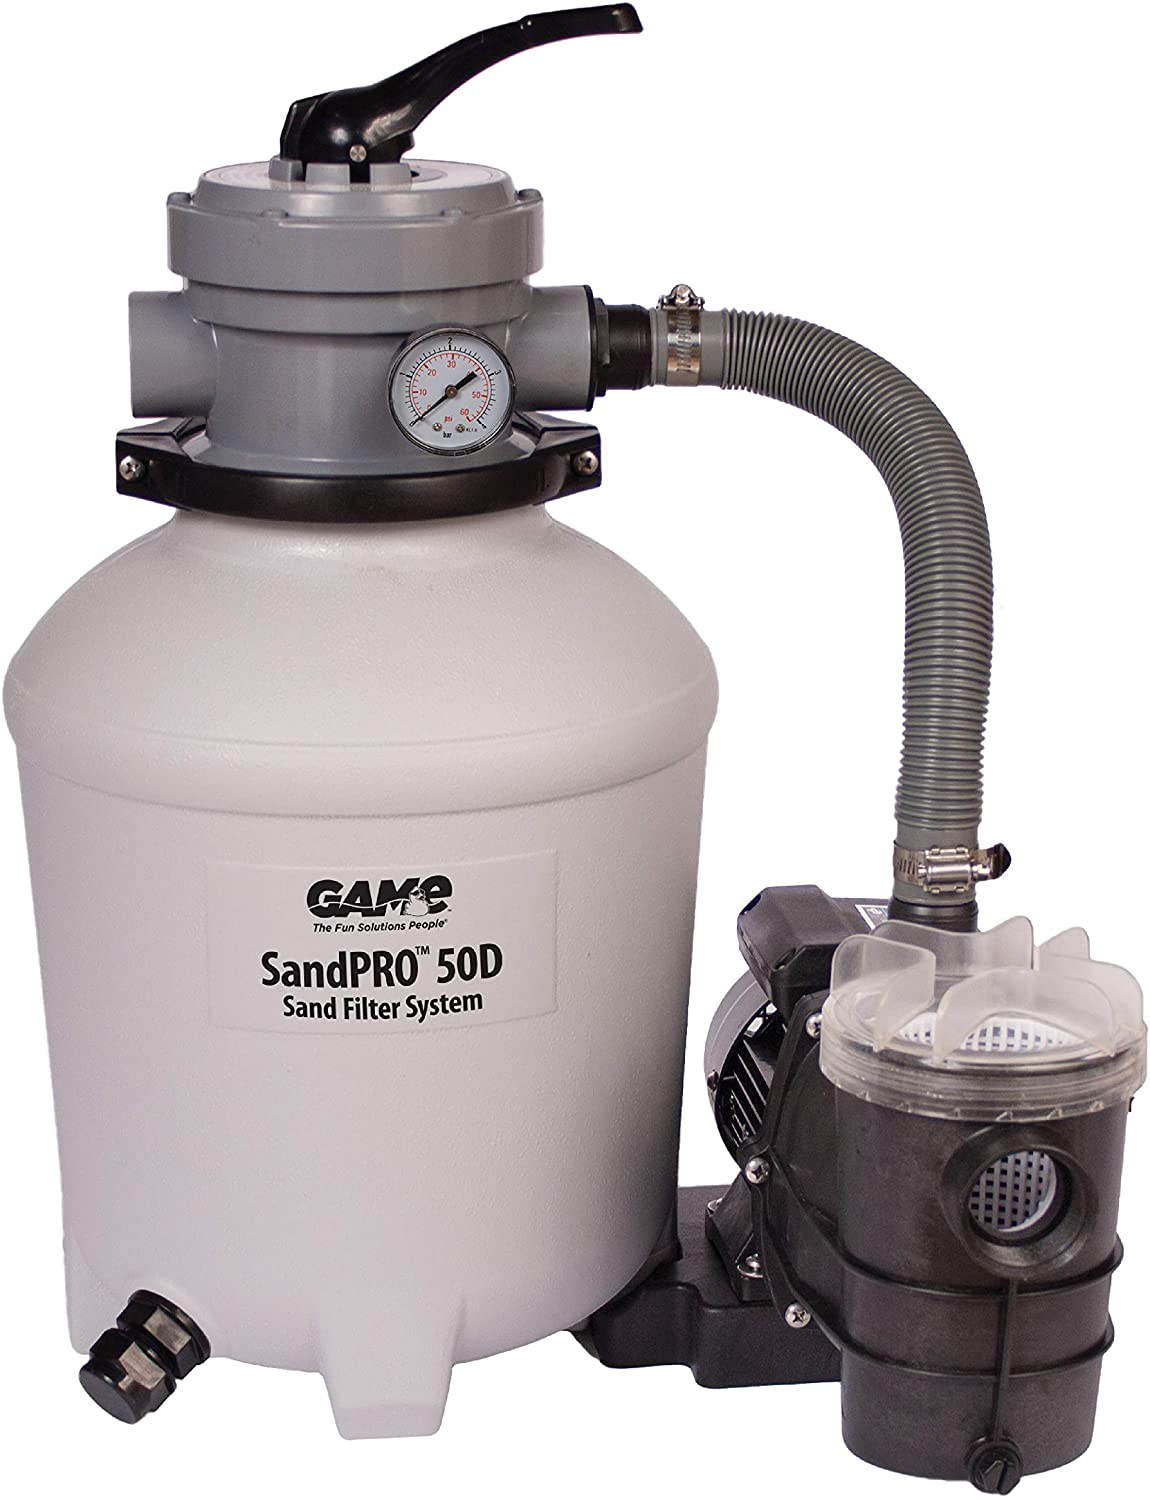 GAME SandPRO 50D Series Above Ground Pool Sand Filter - (Best Rated)